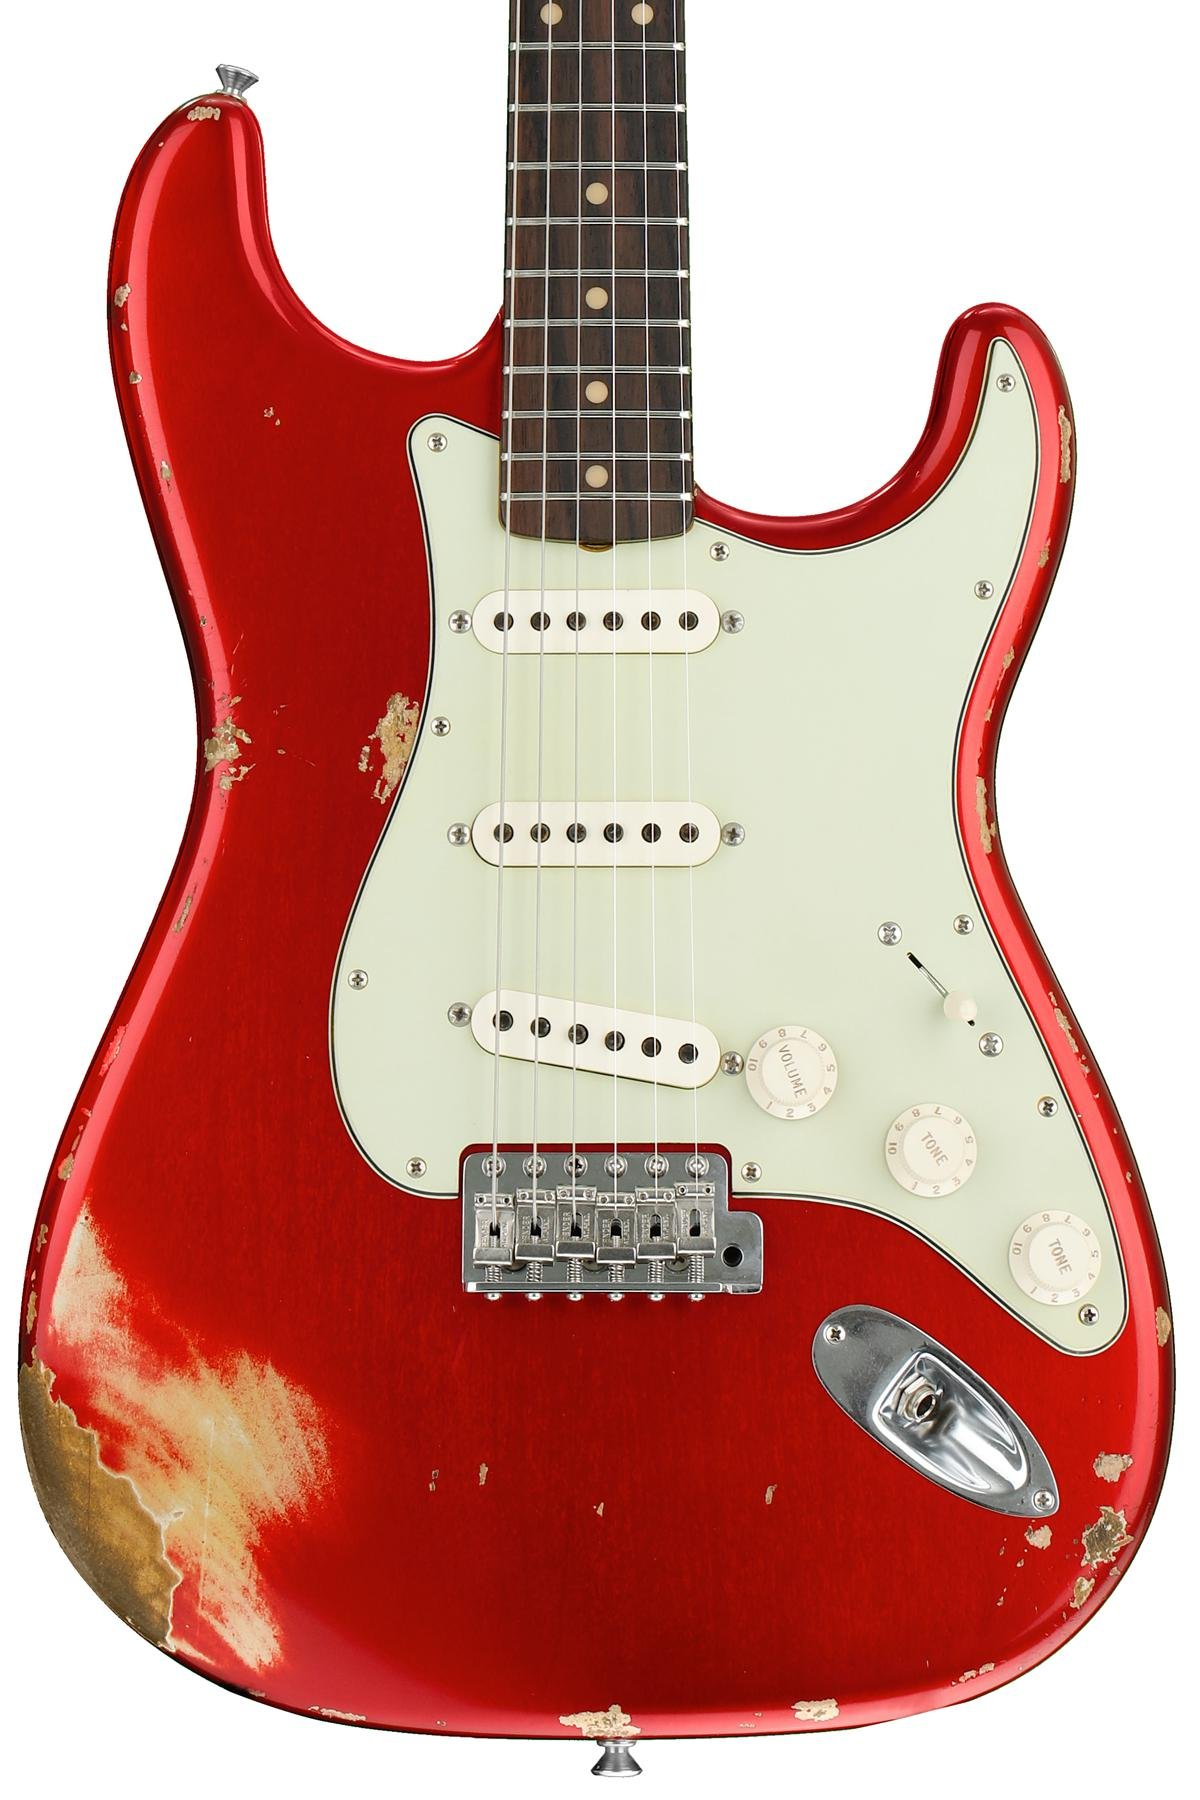 Player Stratocaster Wiring Schematic Diagrams 1959 Diagram Electrical Strat Modifications Fender Deluxe Players Trusted